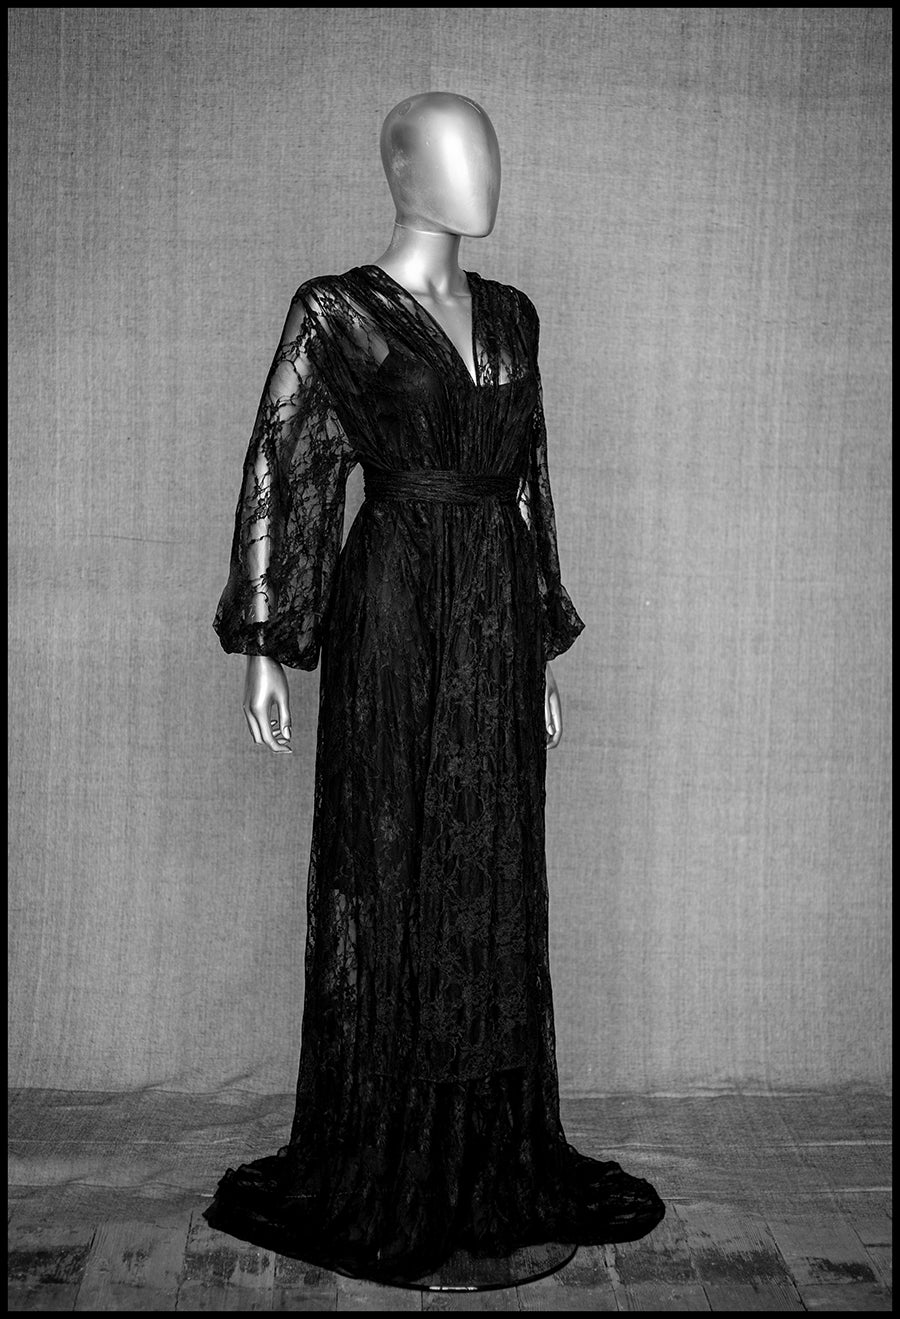 alexandra king for deadly is the female black lace gown